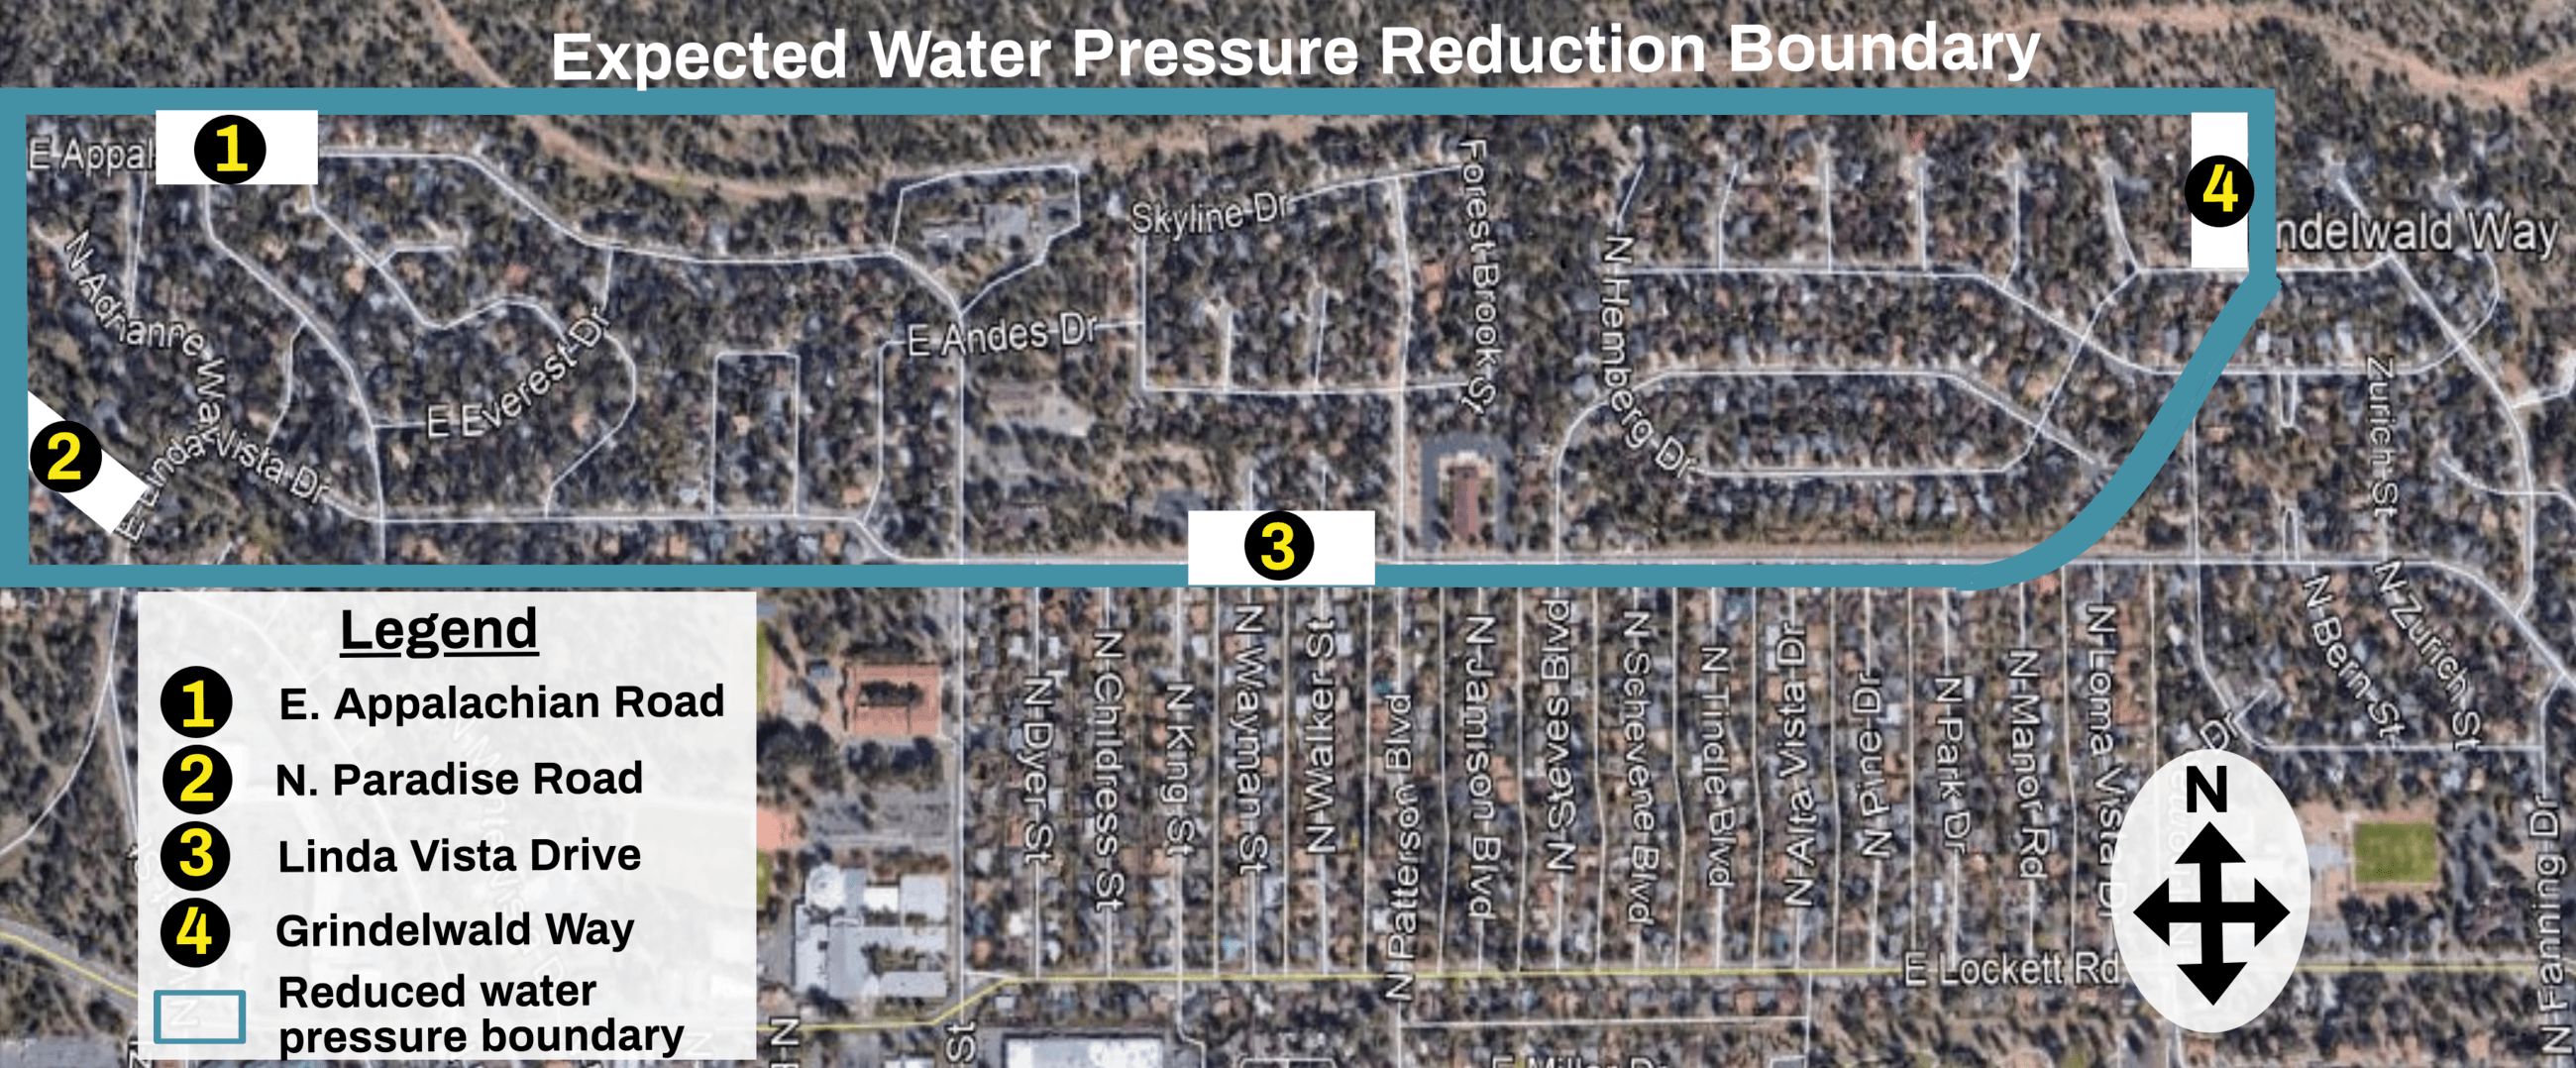 Reduced water pressure boundary V.3